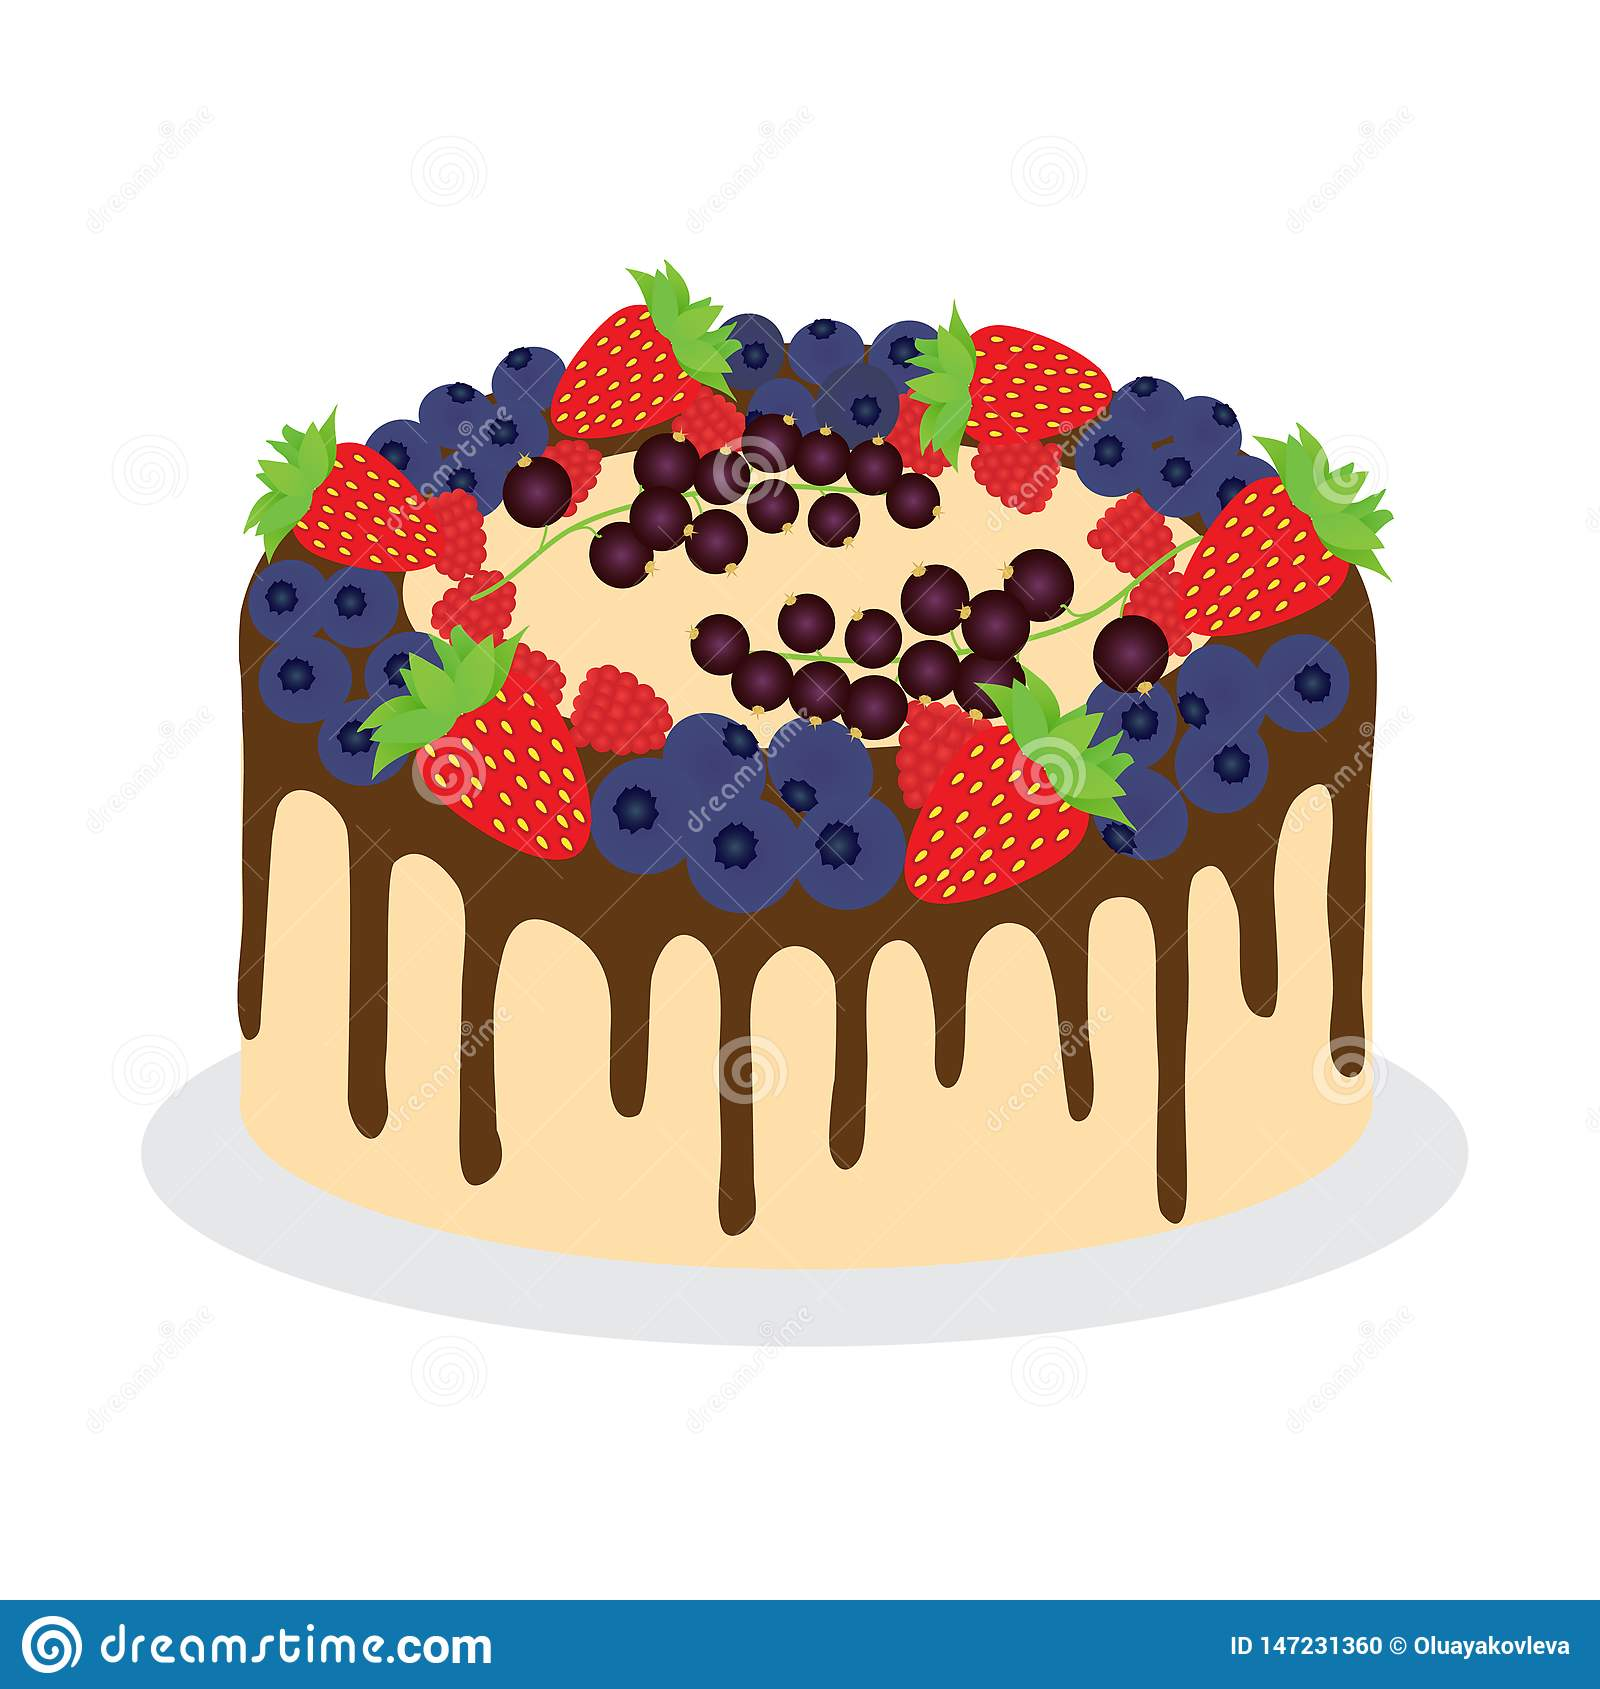 Cake with fresh diferent berries.